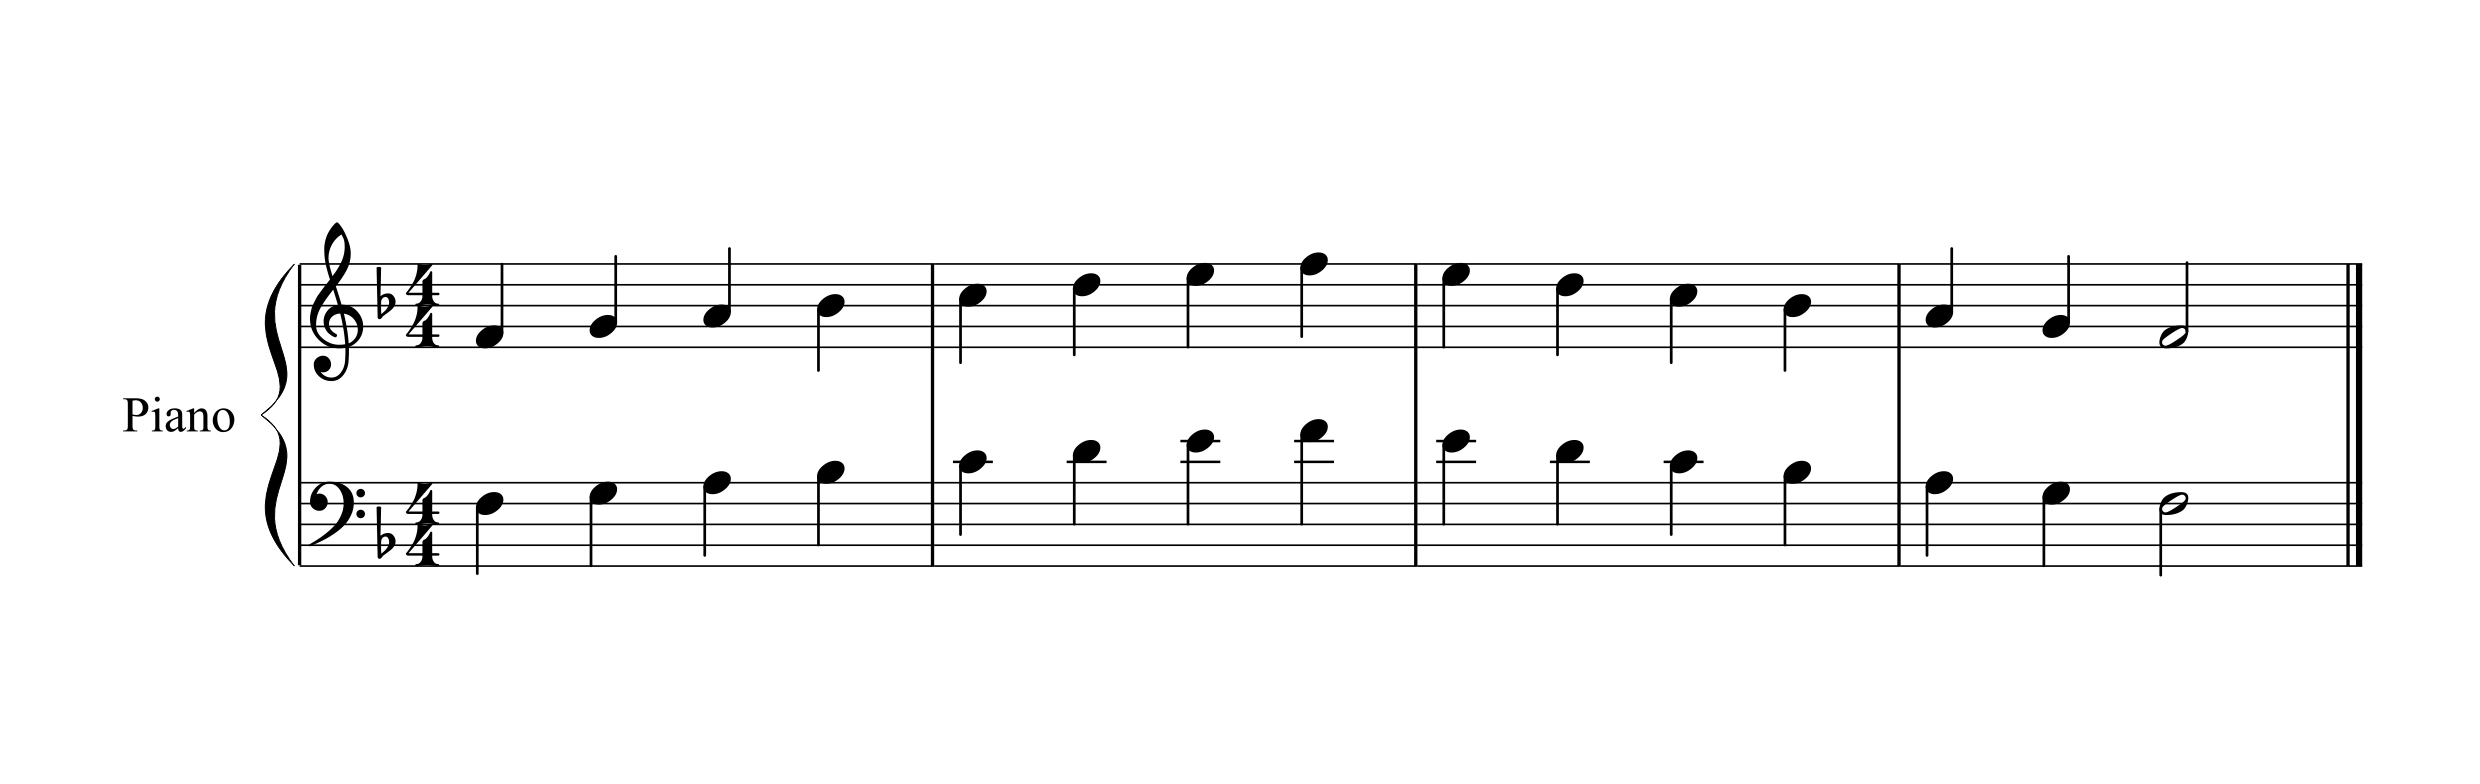 F Major Scale music manuscript